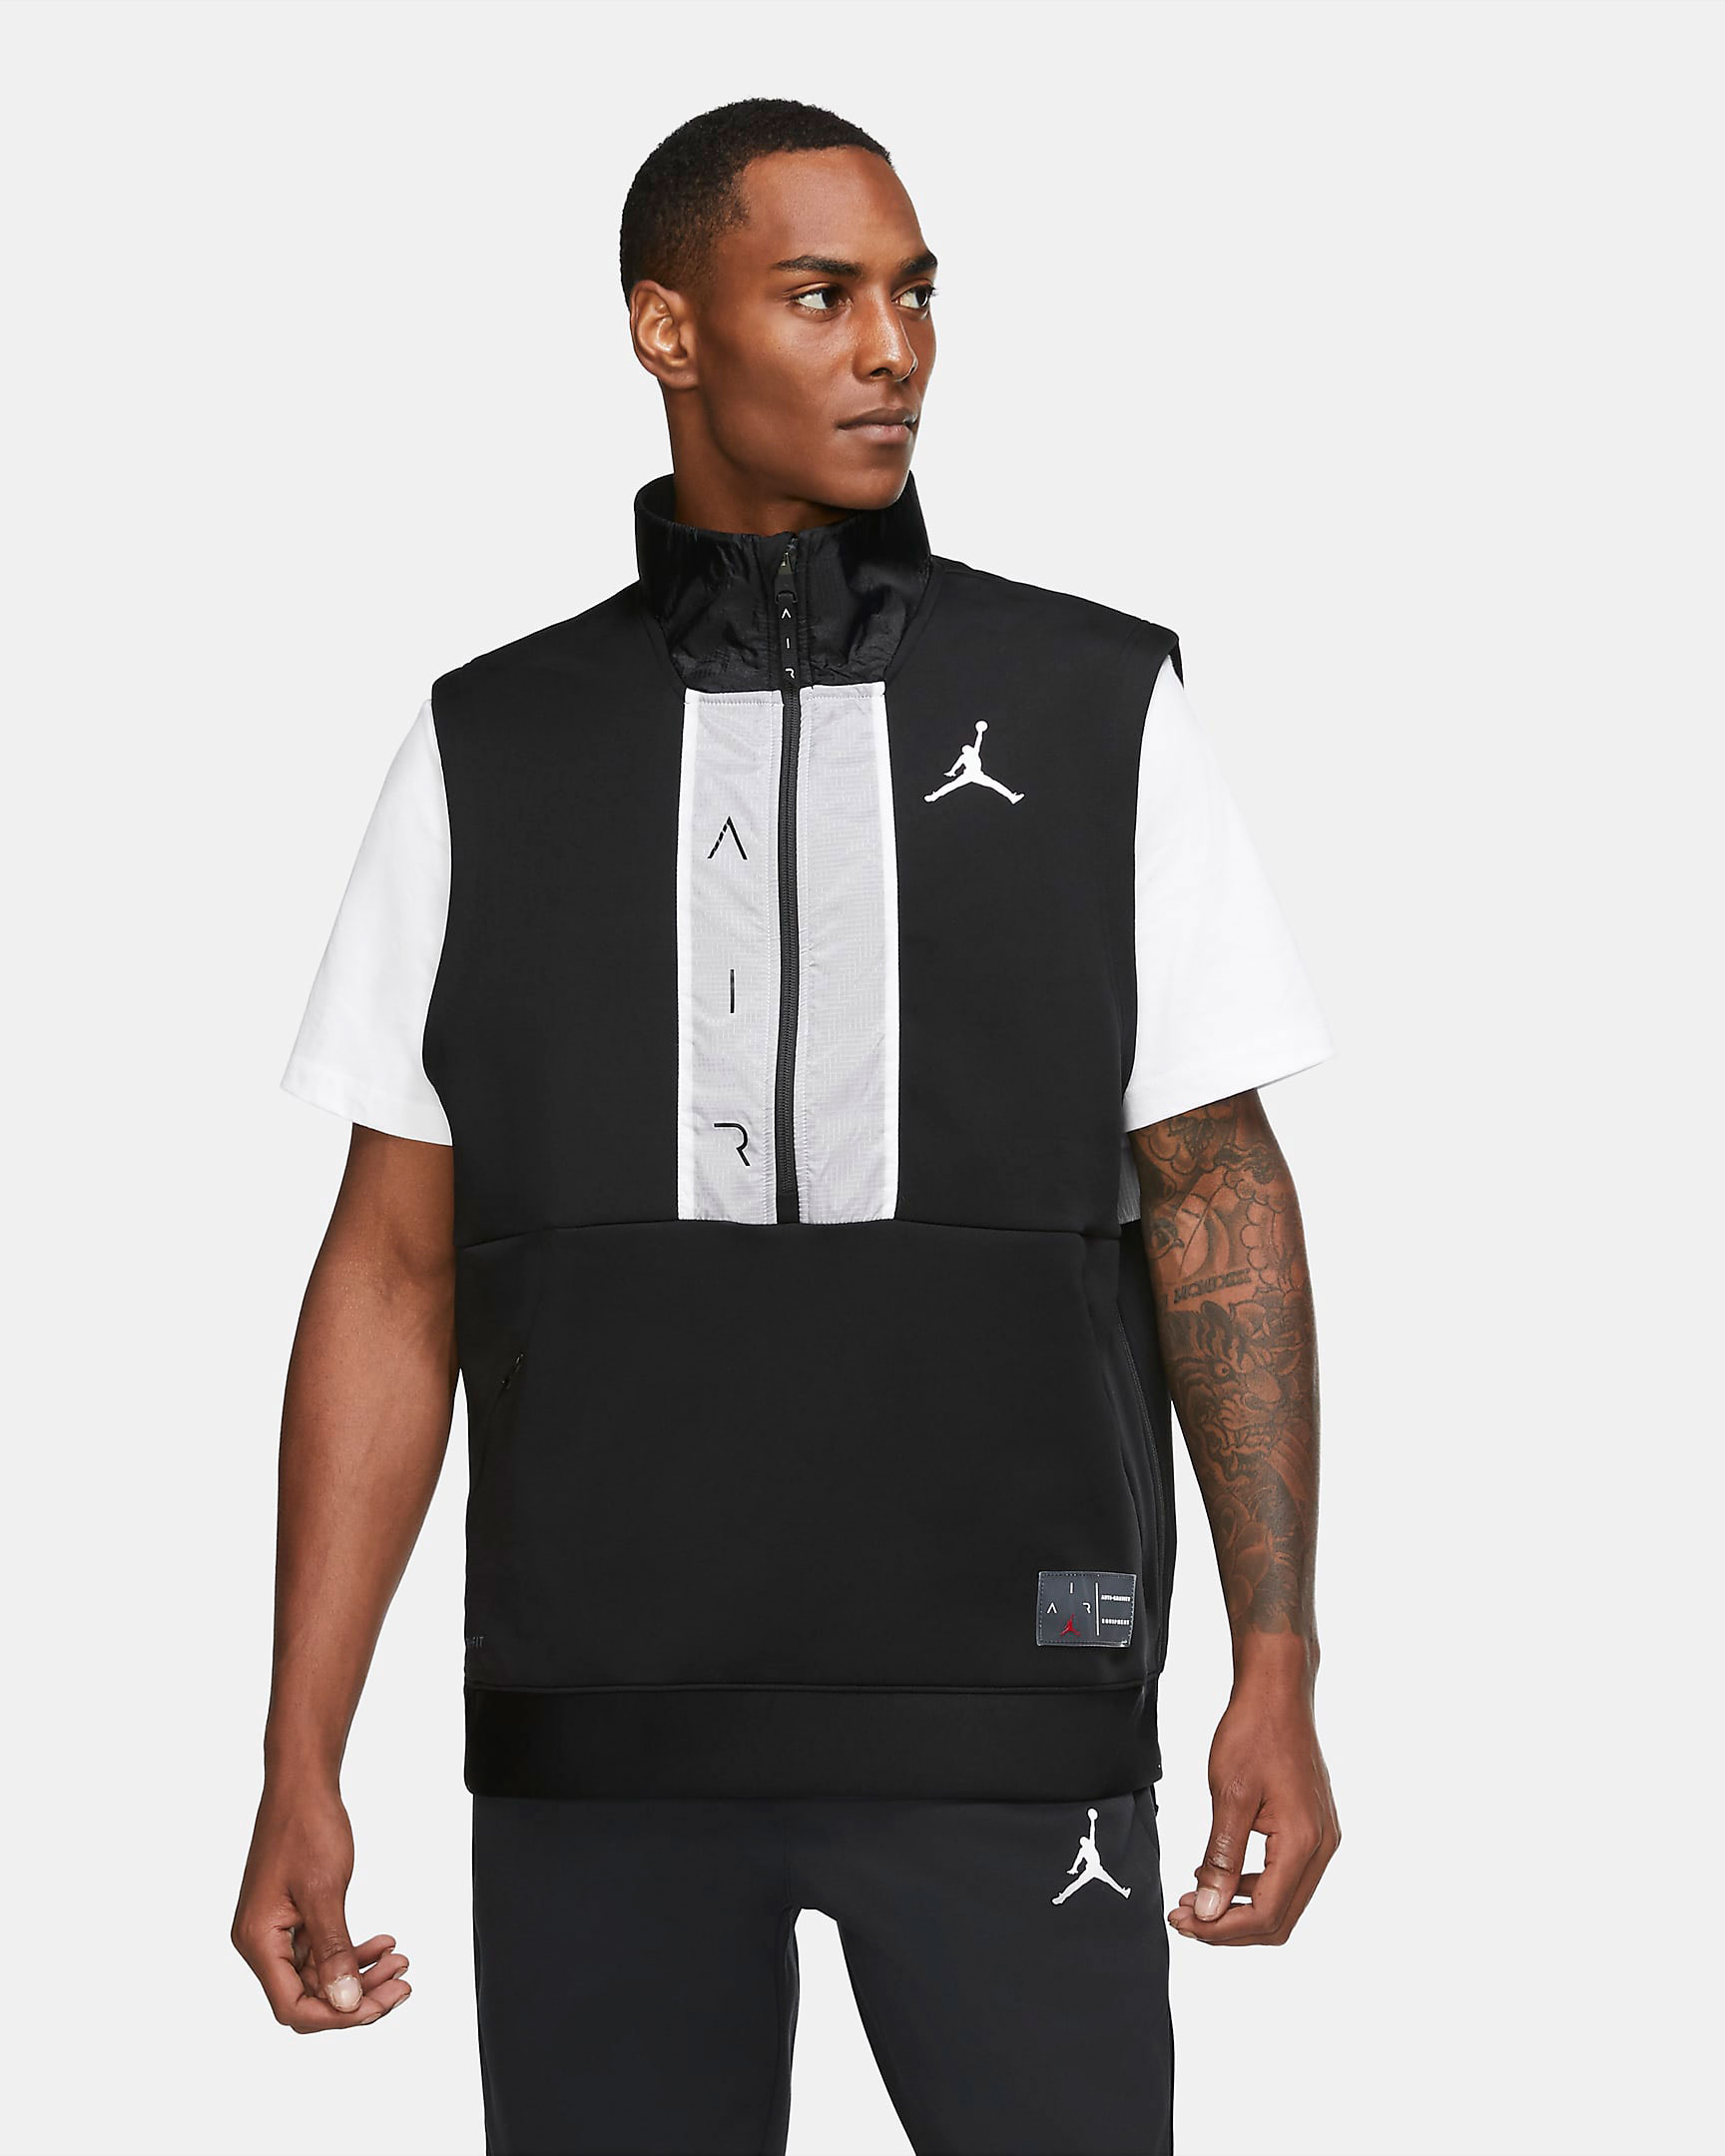 air-jordan-11-jubilee-black-white-jordan-vest-1